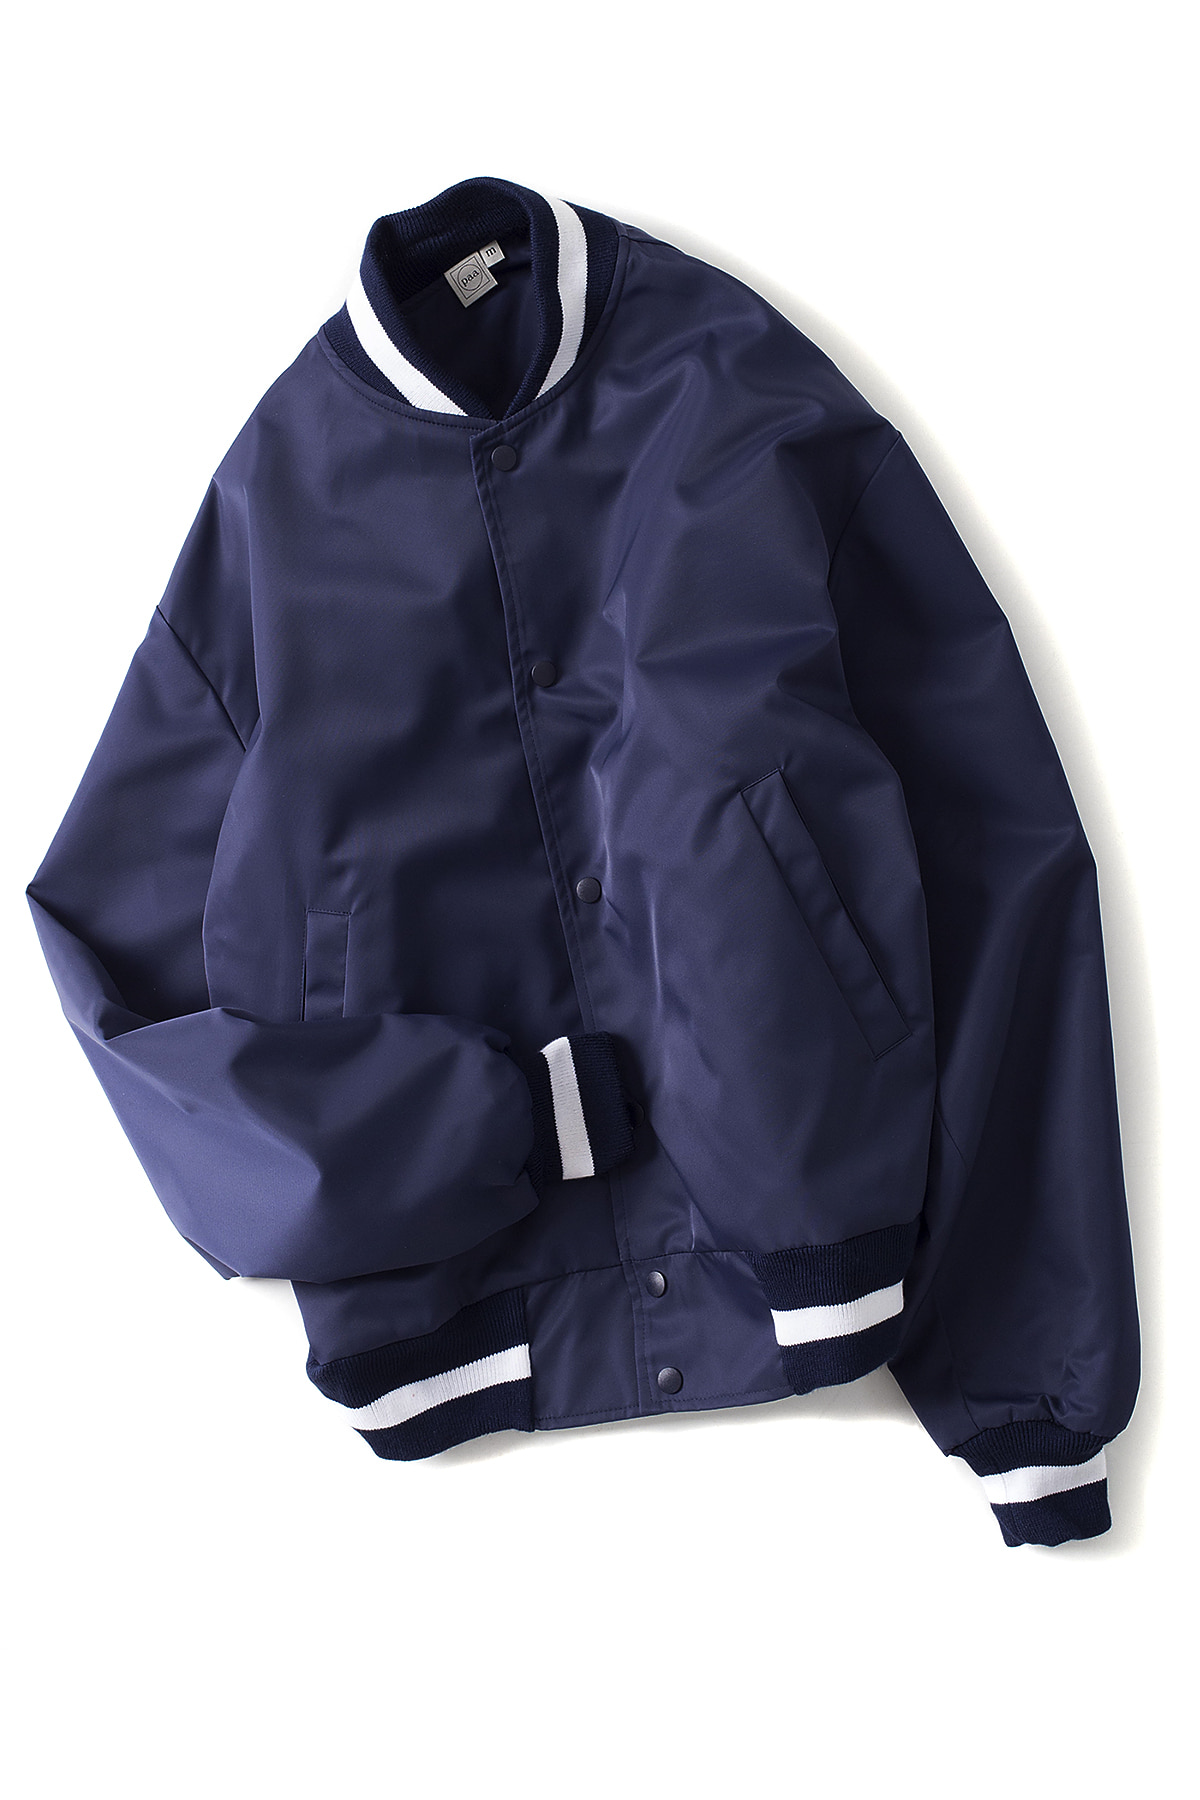 paa : Gymnasium Jacket (Navy)